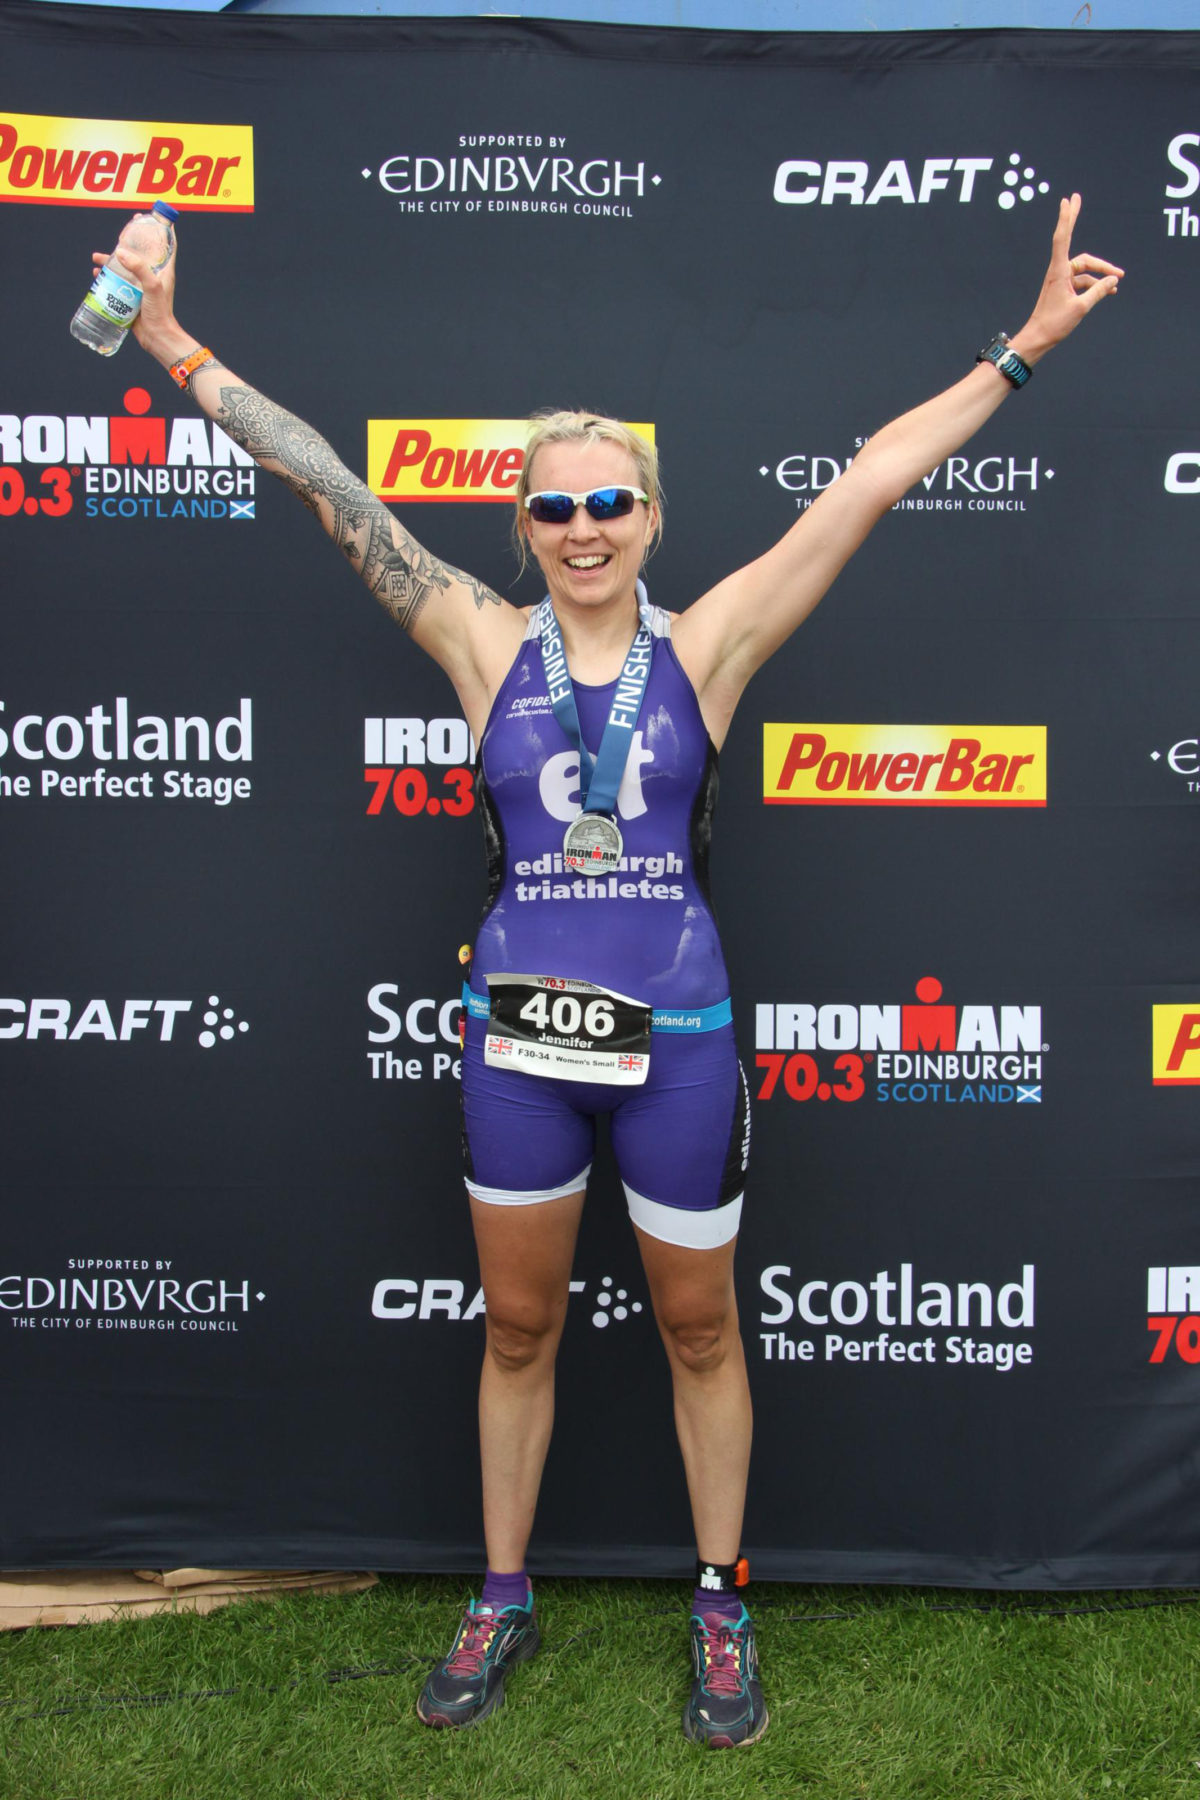 Edinburgh Ironman 70.3 Race Report